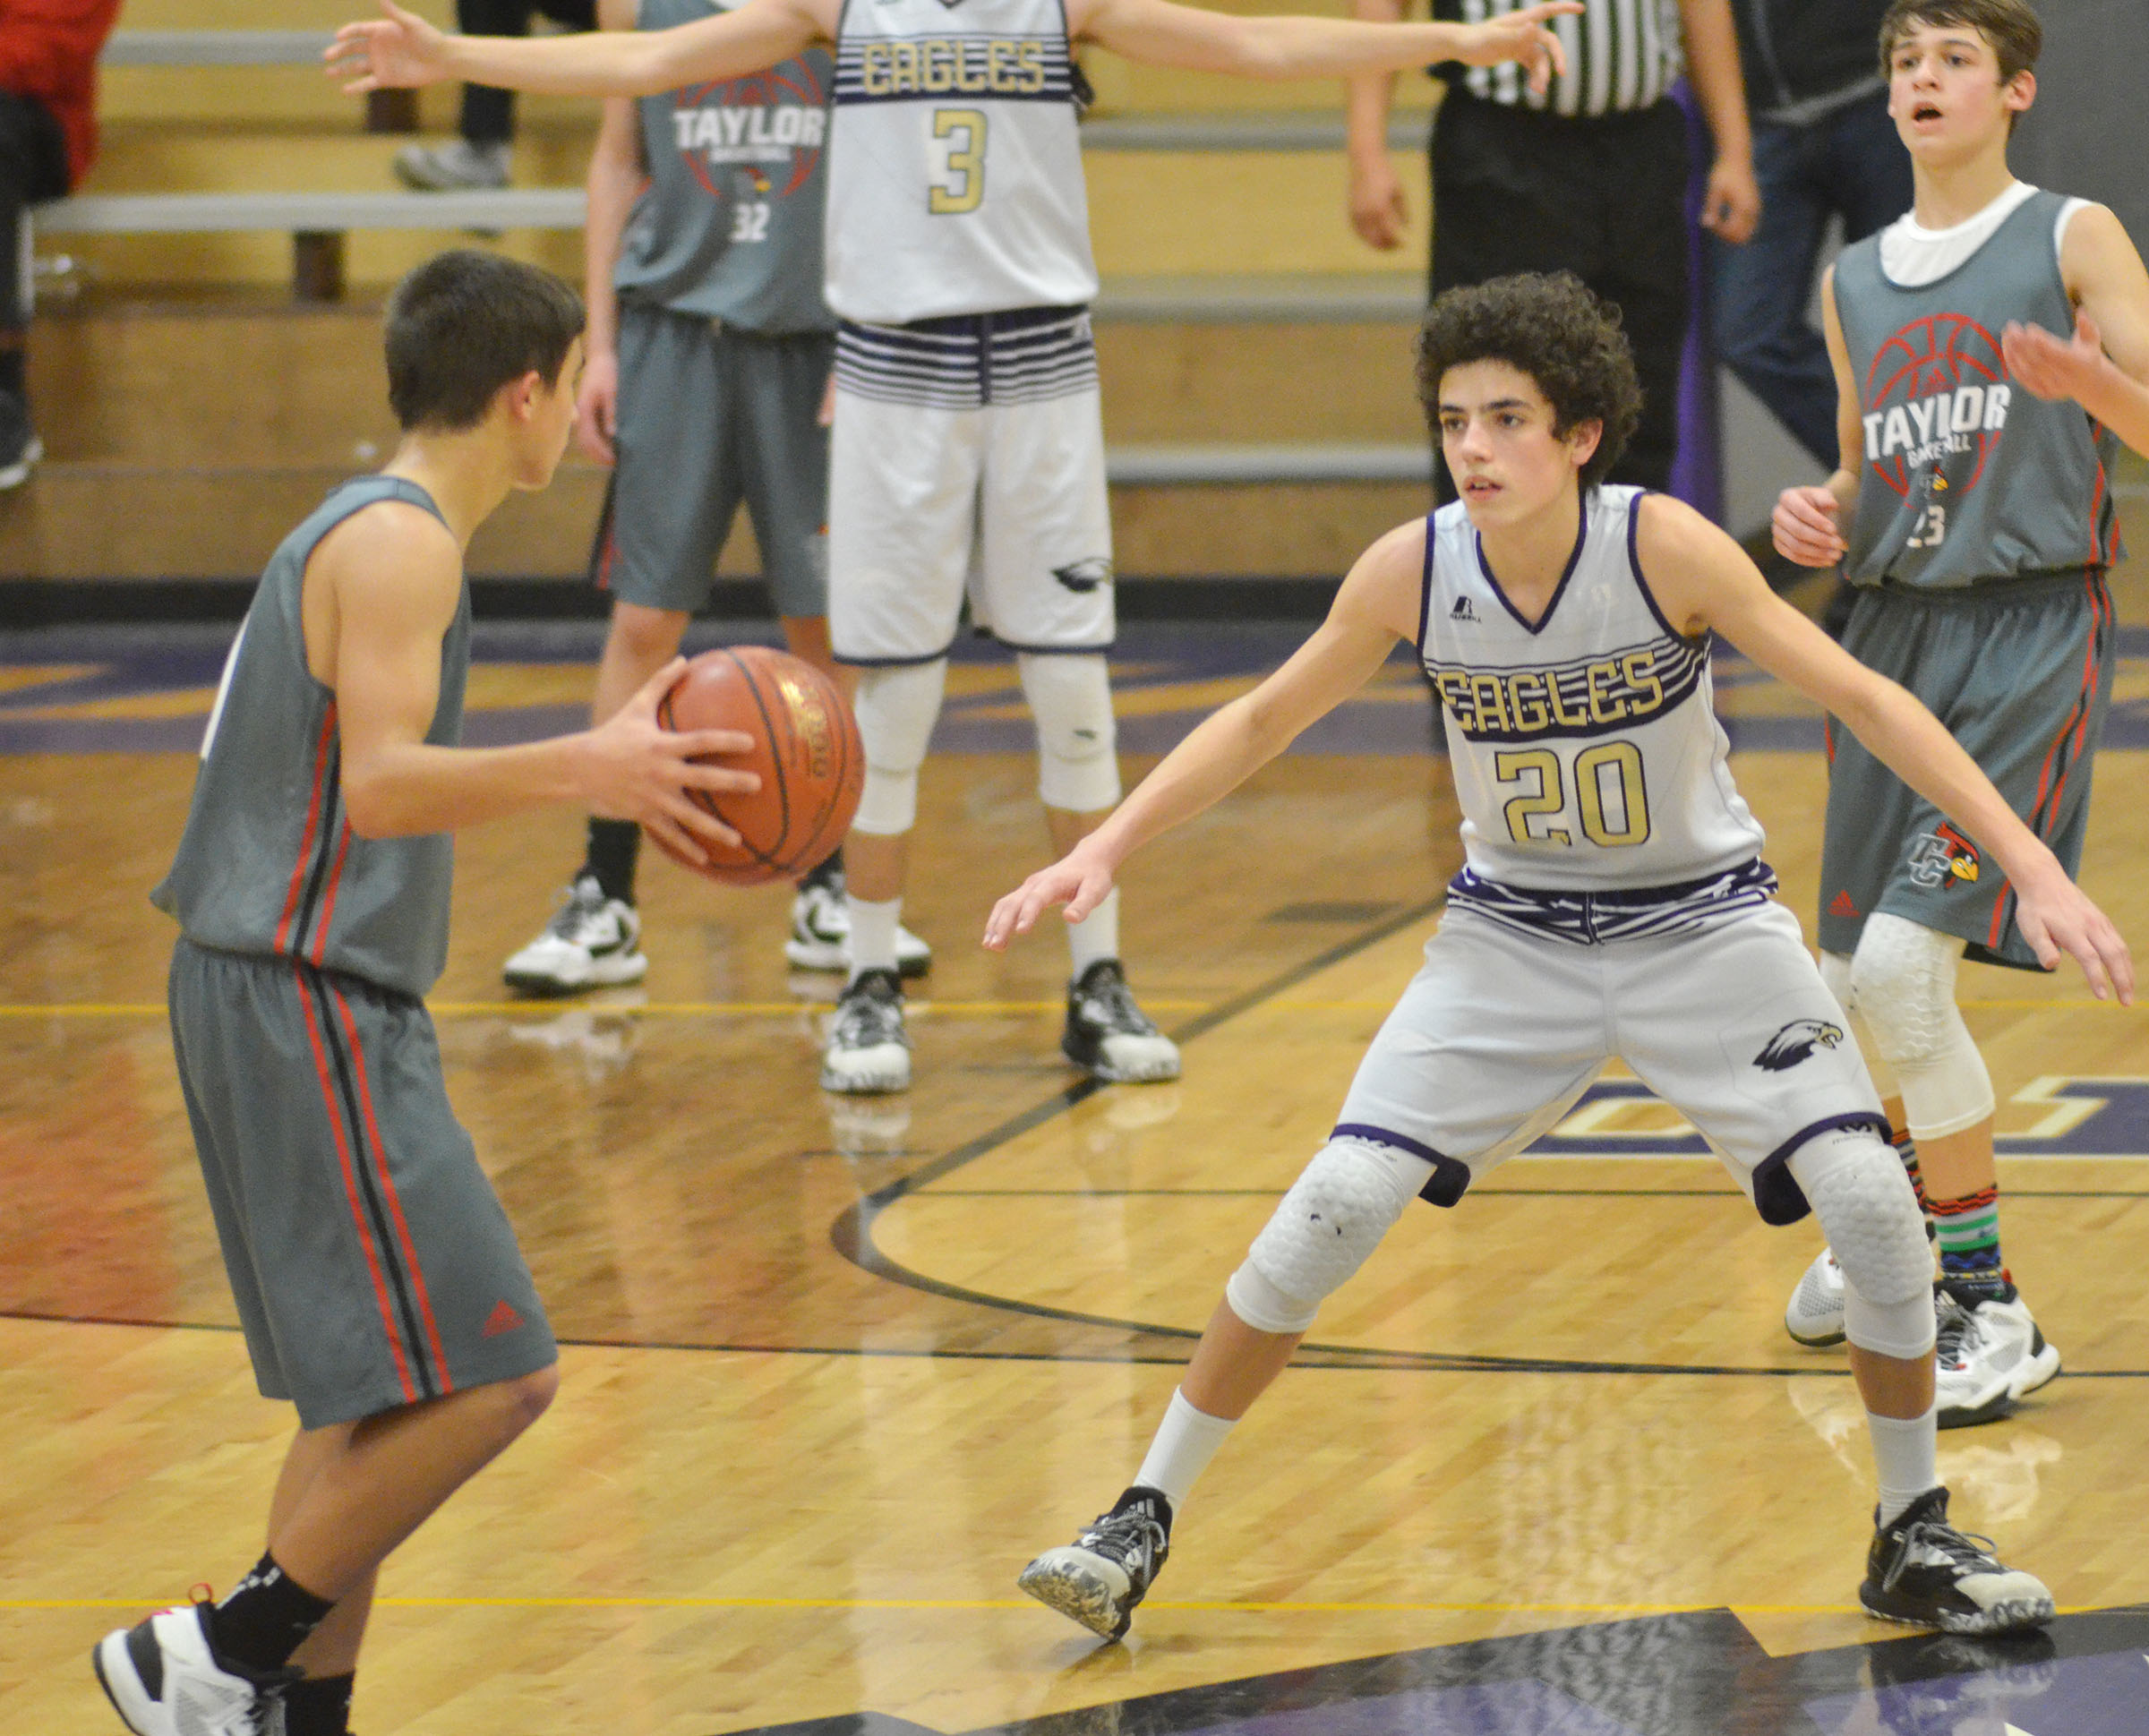 CMS eighth-grader Kameron Smith plays defense.